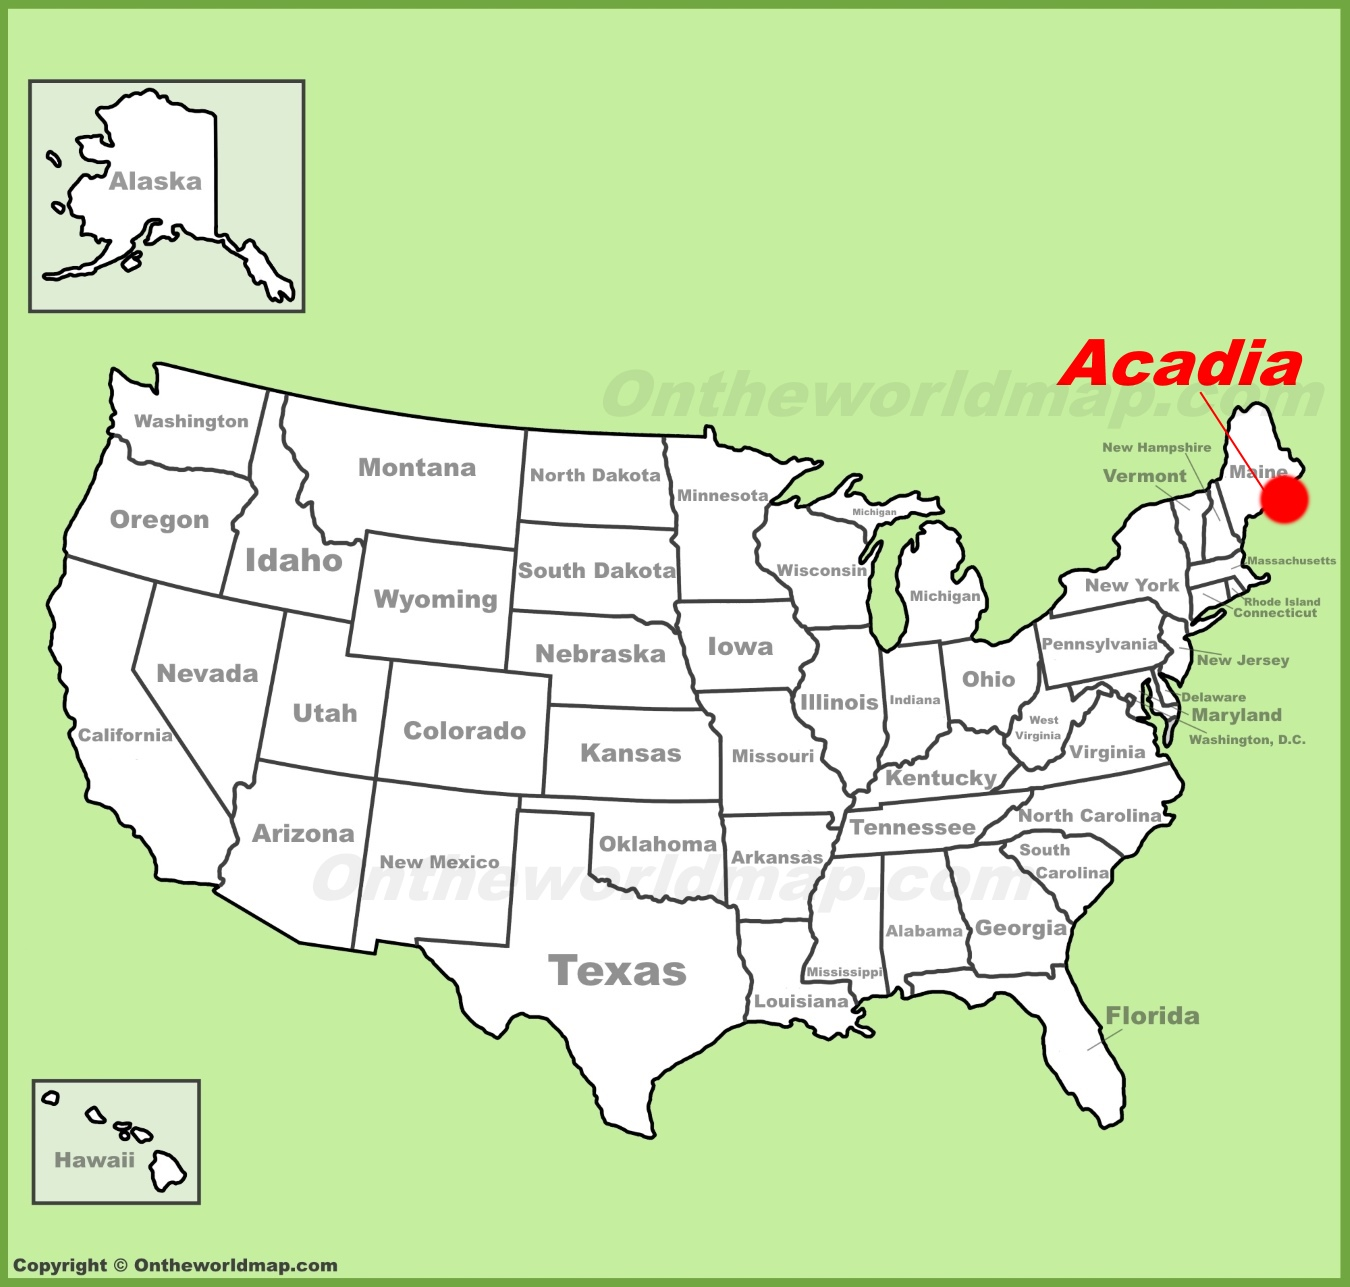 full size acadia location map